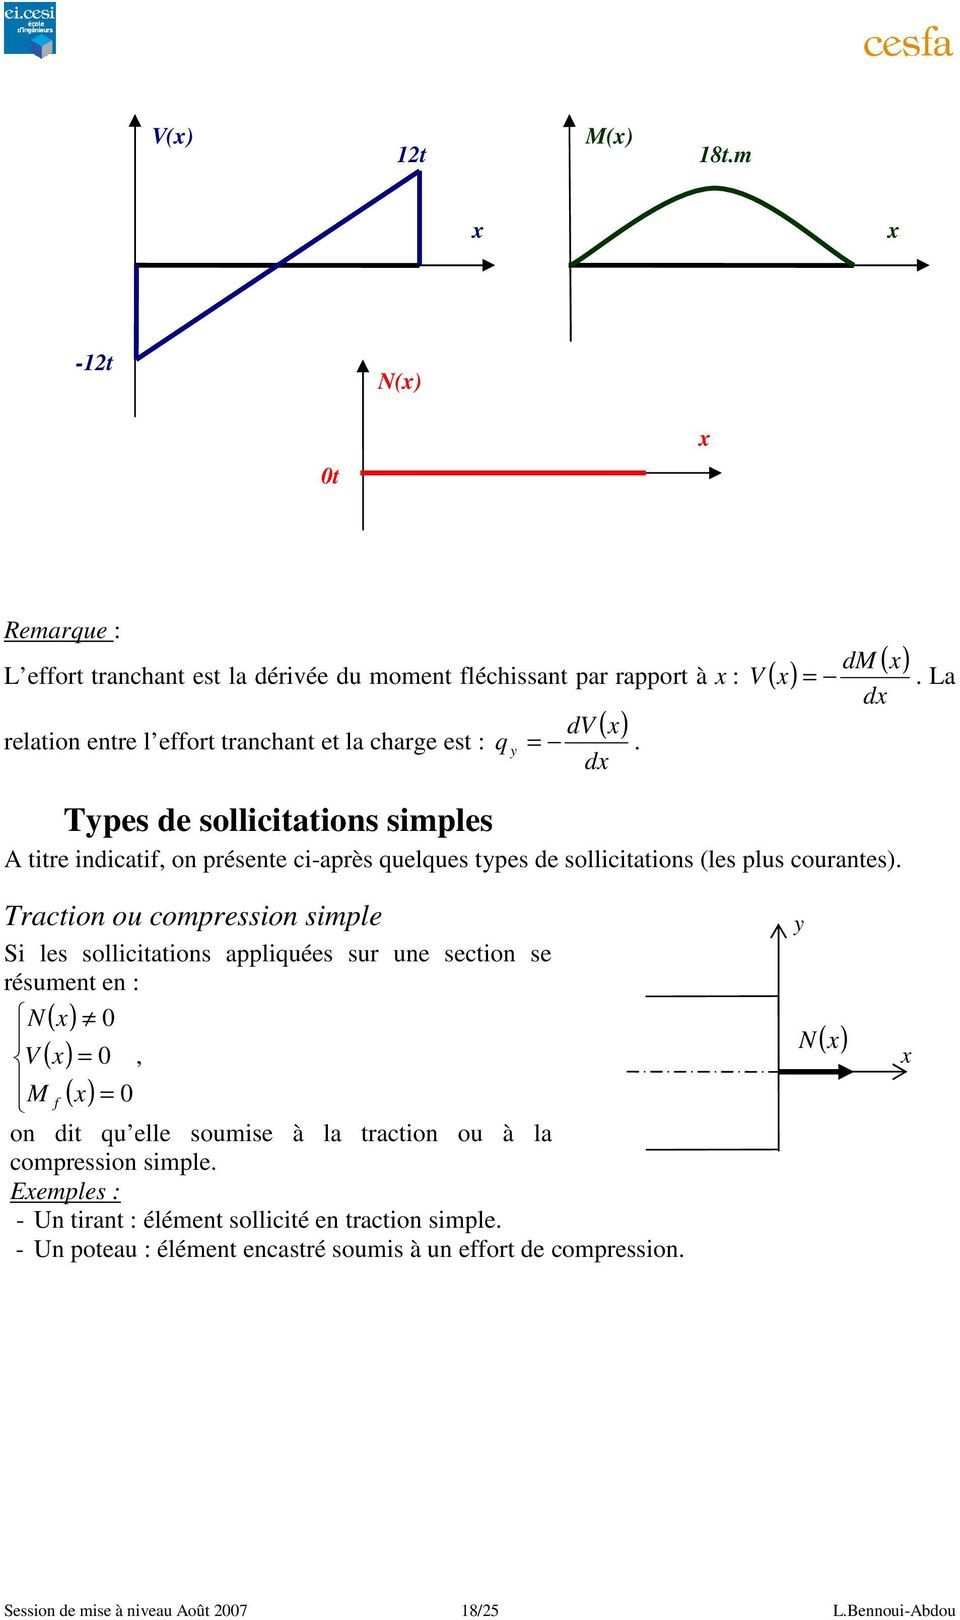 simpe i es soicitations appiuées su une section se ésument en : N( ) V ( ), f ( ) on dit u ee soumise à a taction ou à a compession simpe Eempes : -